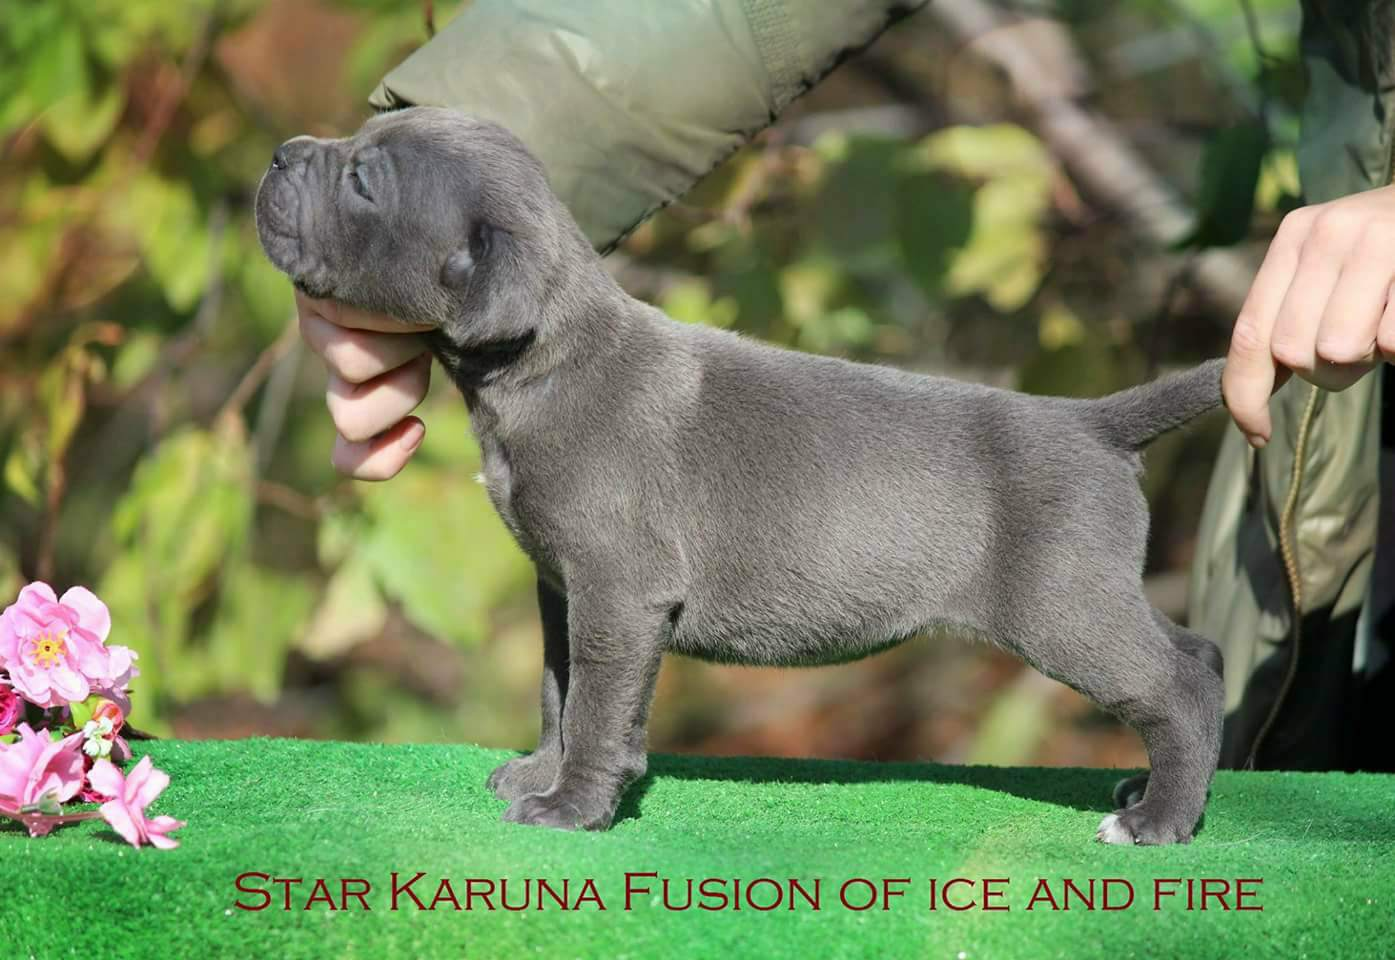 Star Karuna  Fusion Ice and Fire